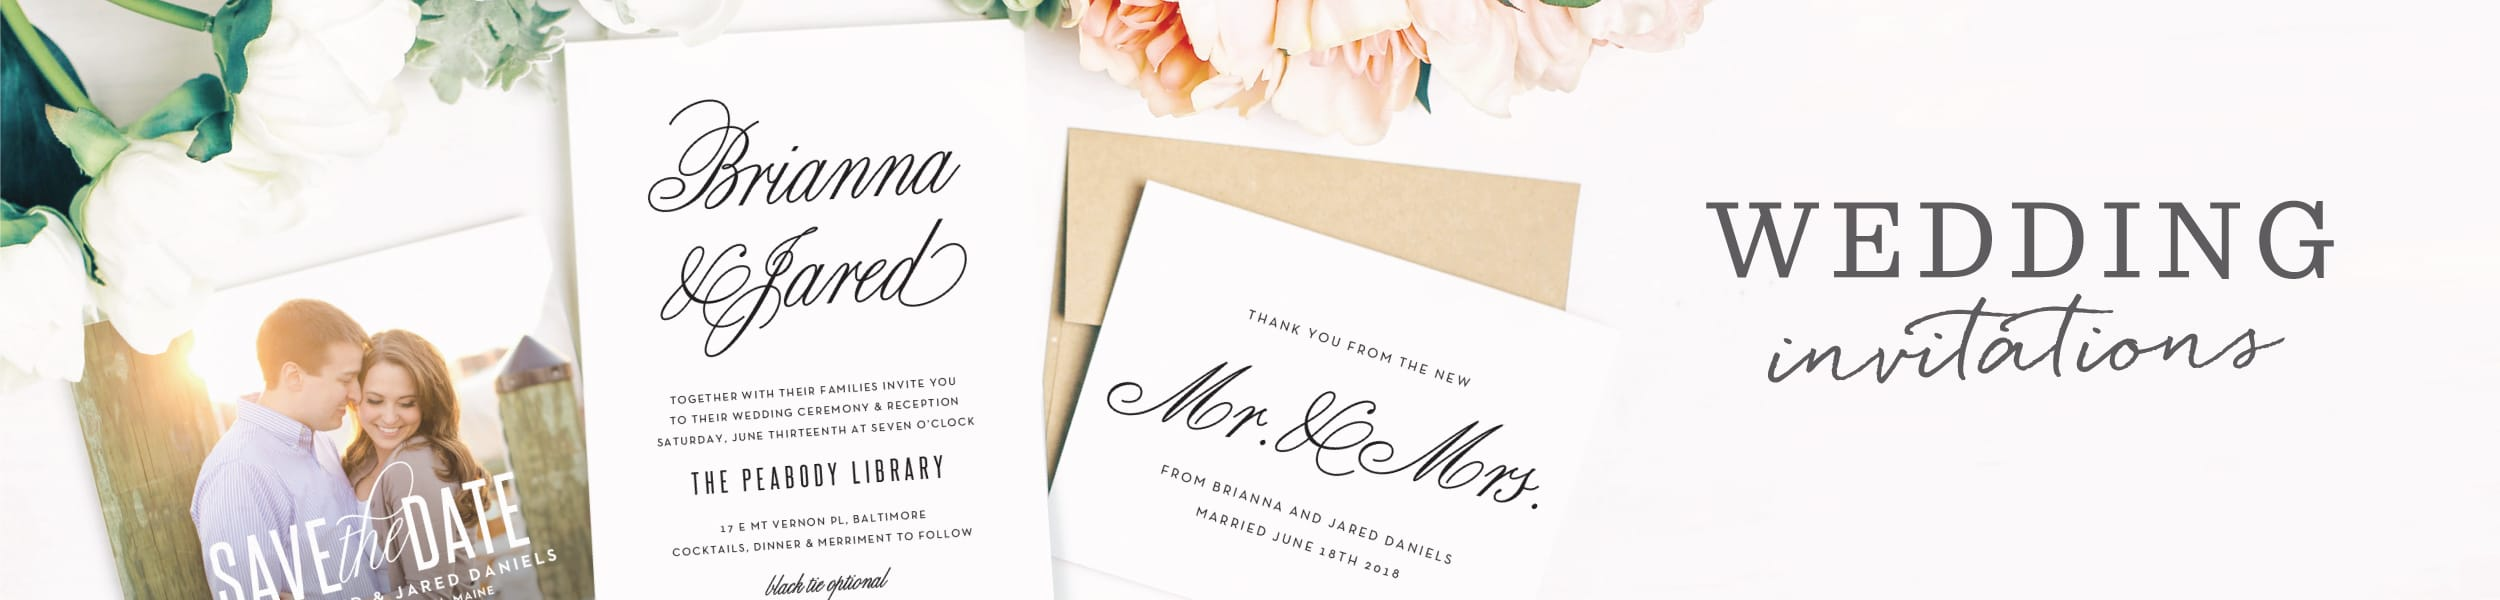 Utah Wedding Invitations and Announcements